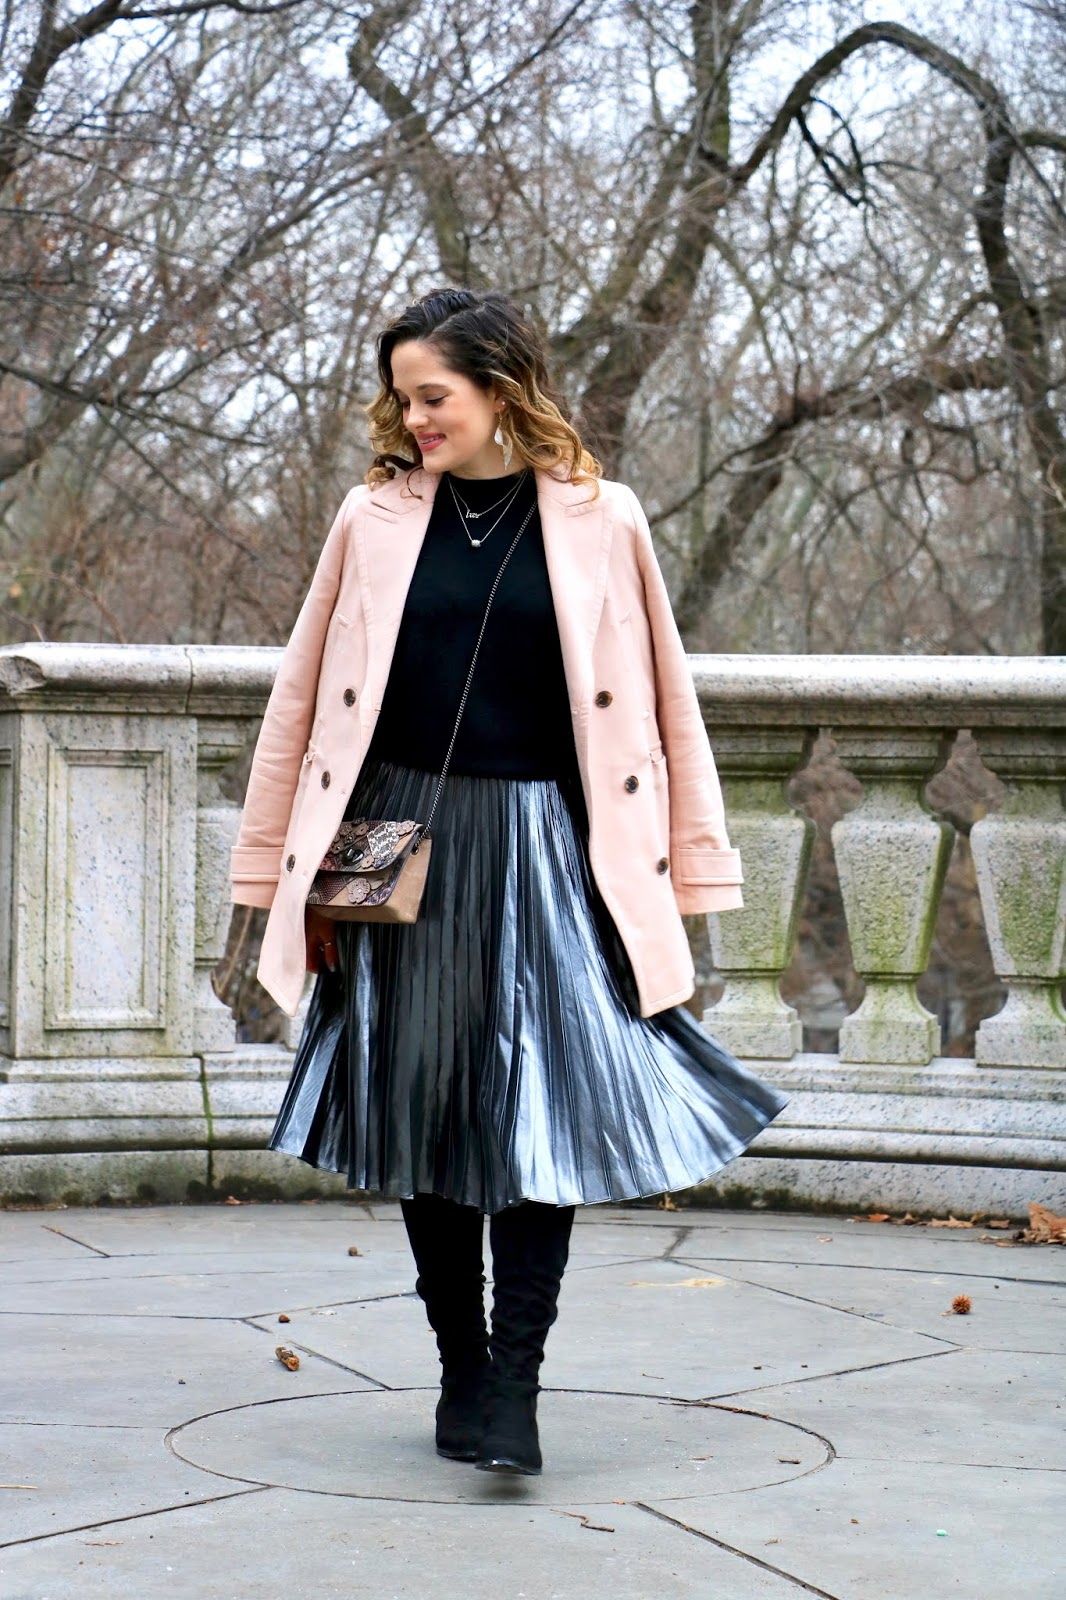 Nyc fashion blogger Kathleen Harper's winter date night outfit